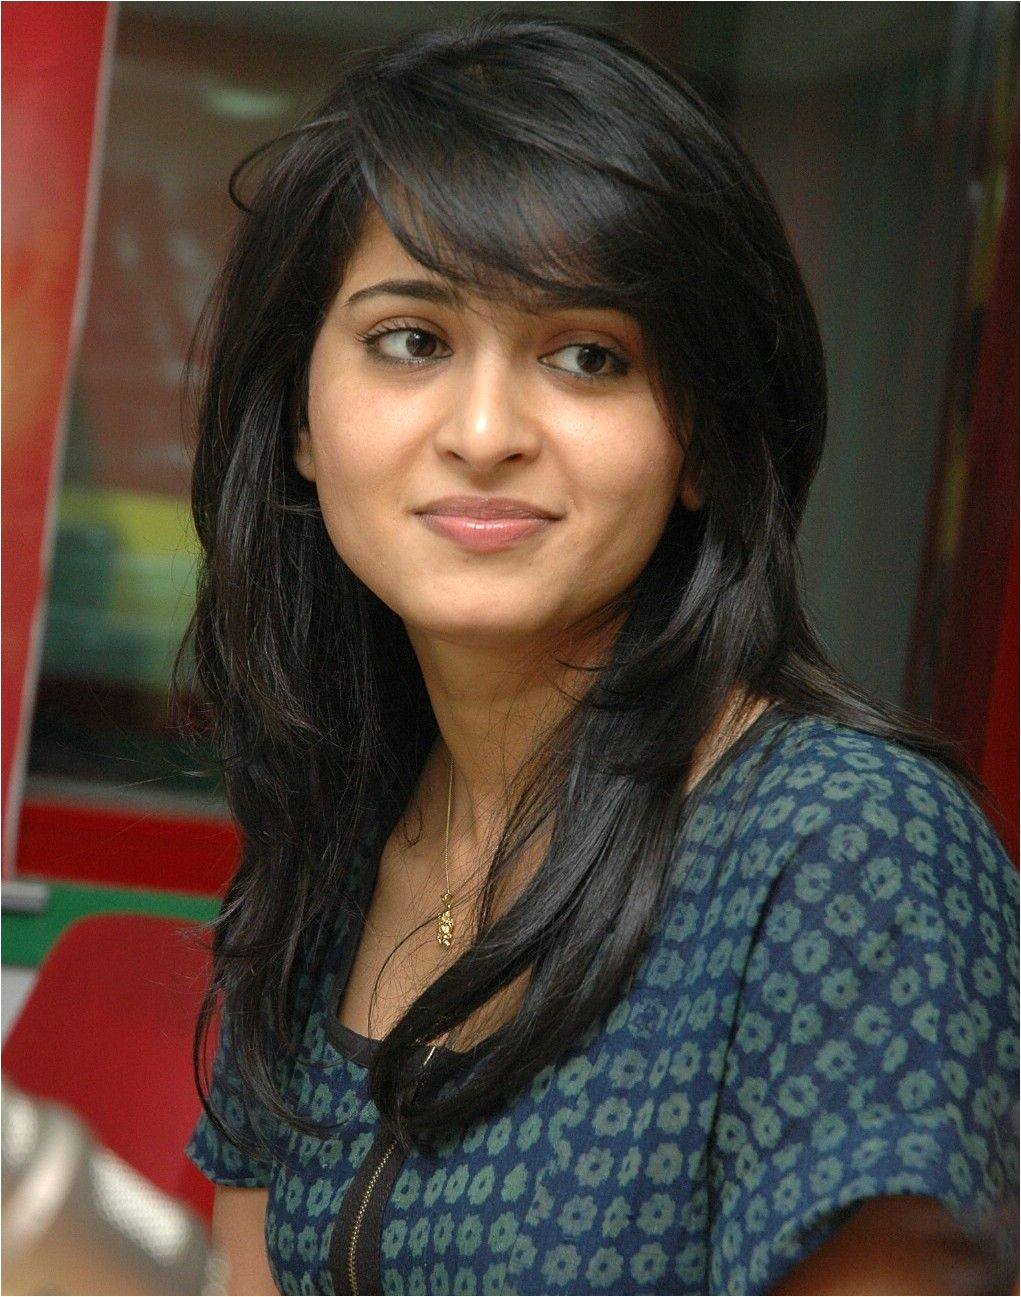 Feather Cut Hairstyle for Indian Girls Latest Hairstyles